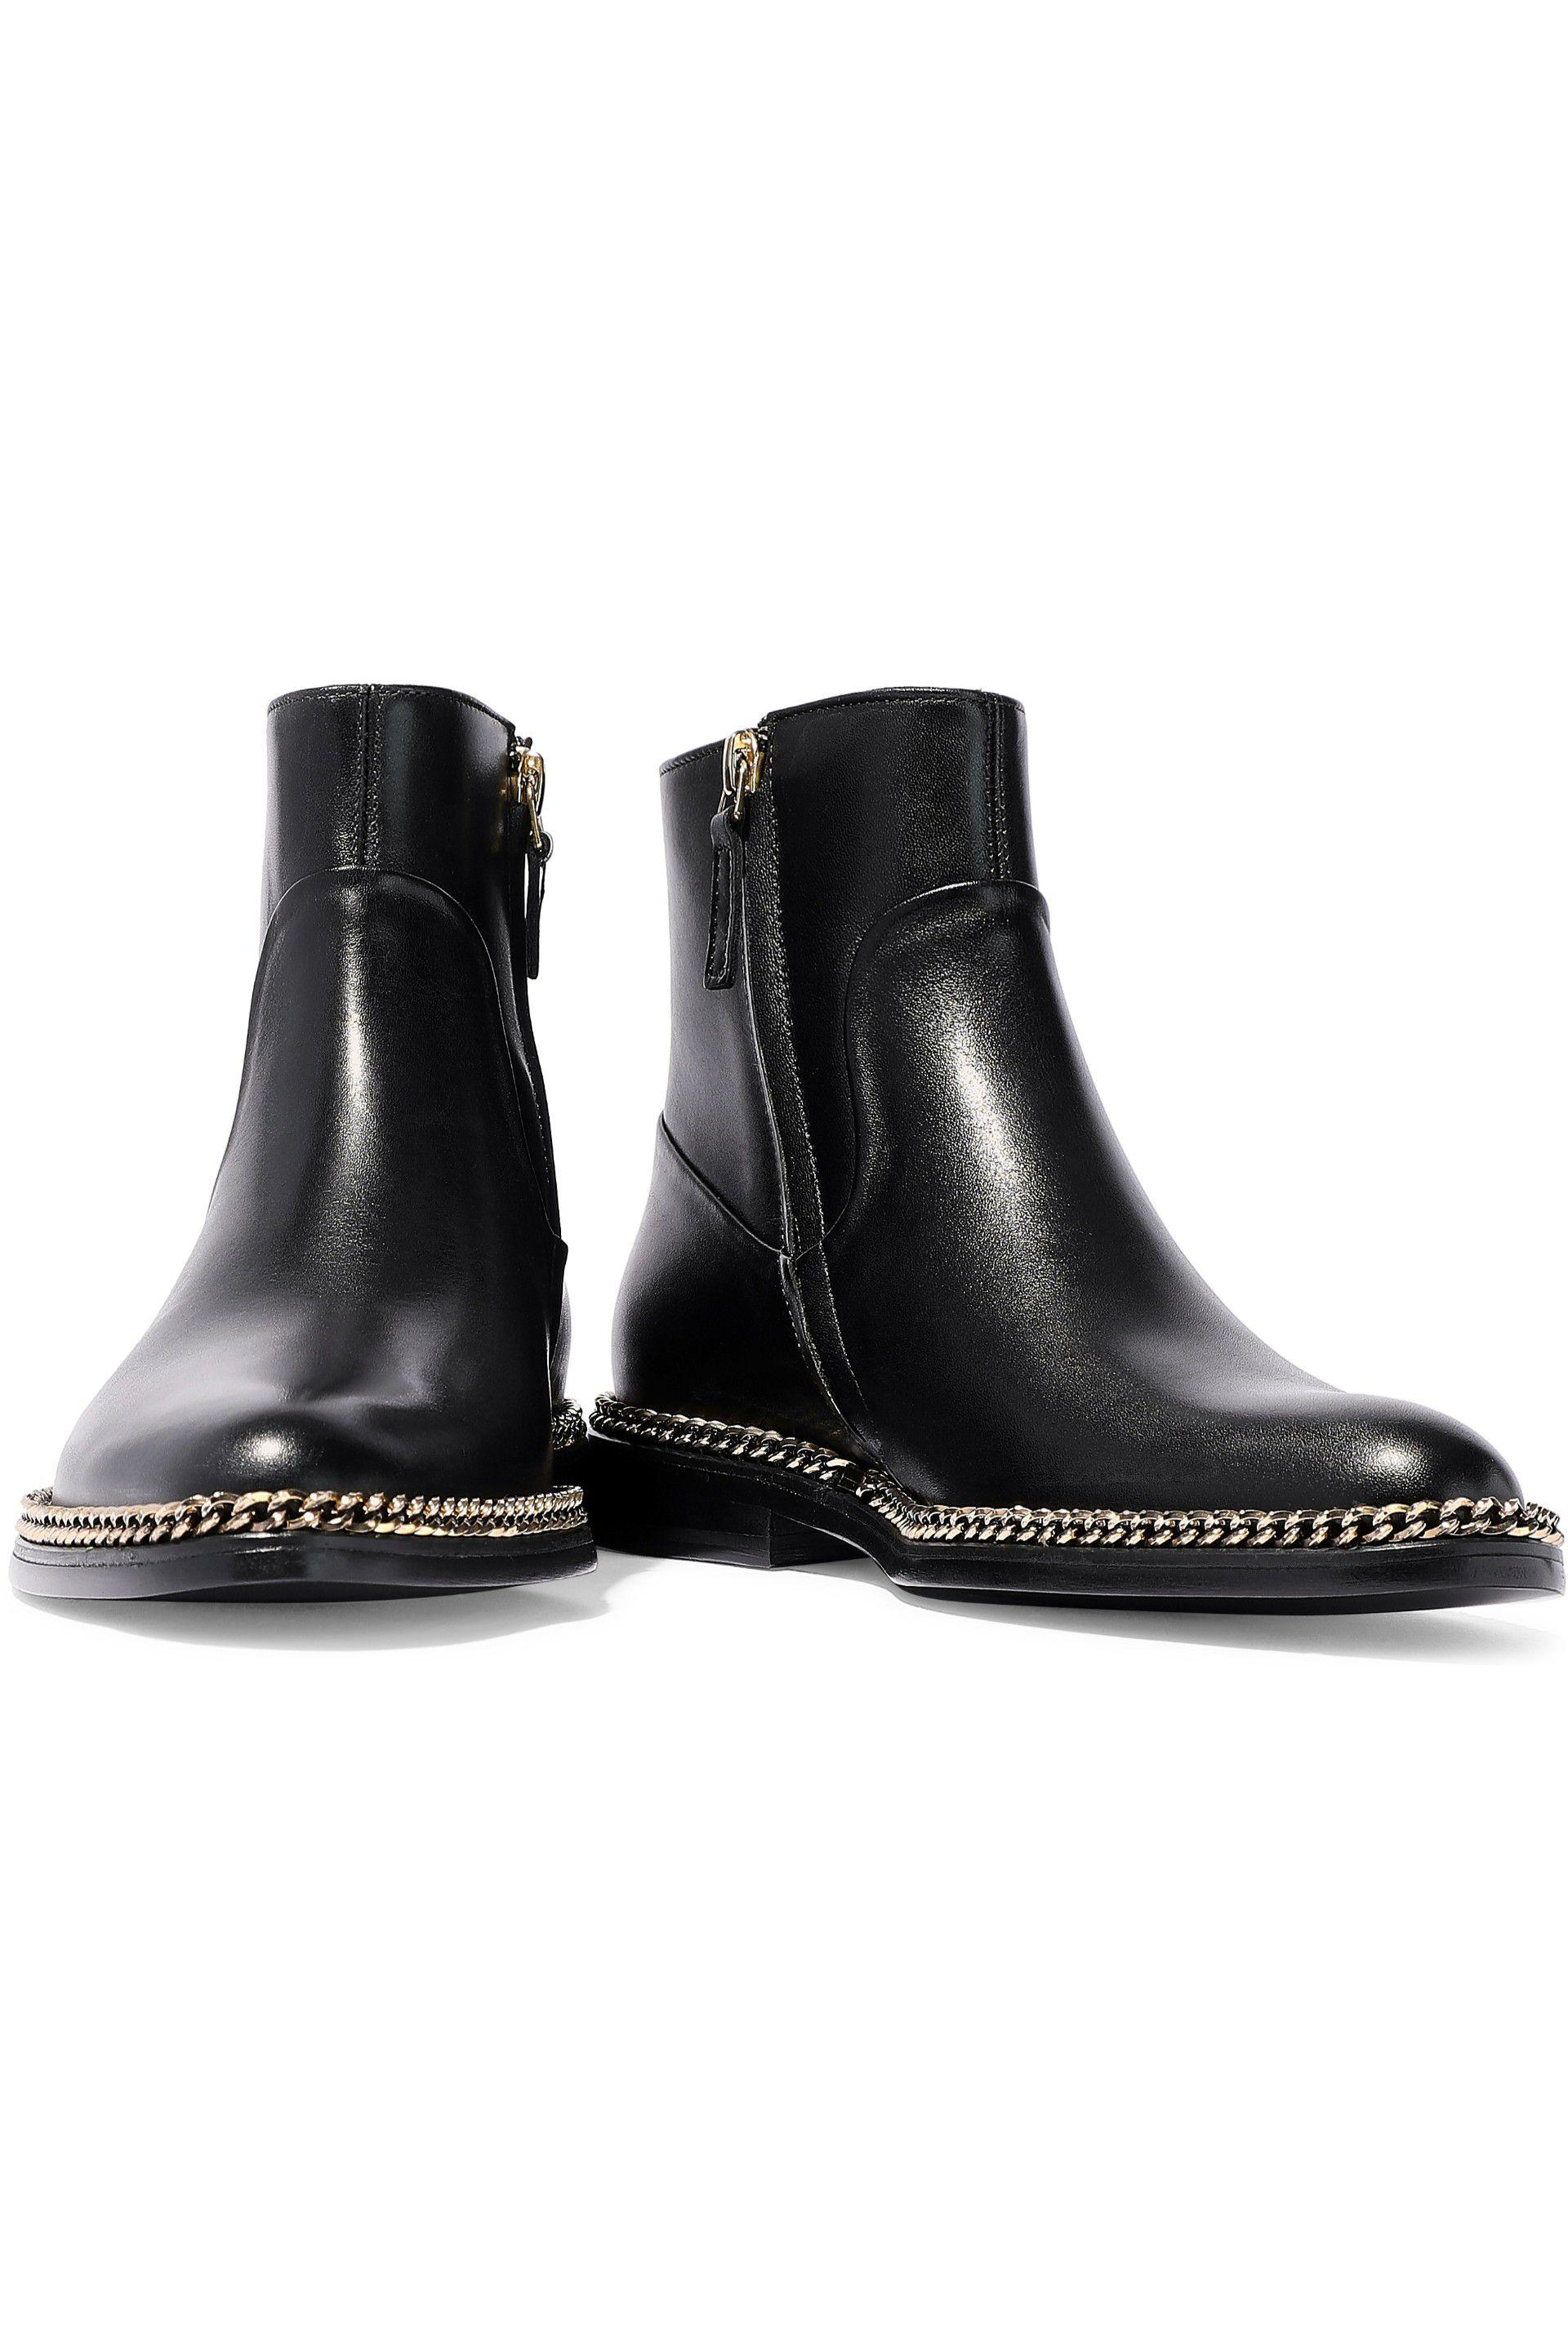 8a2cab4203c Lanvin - Woman Chain-trimmed Leather Ankle Boots Black - Lyst. View  fullscreen